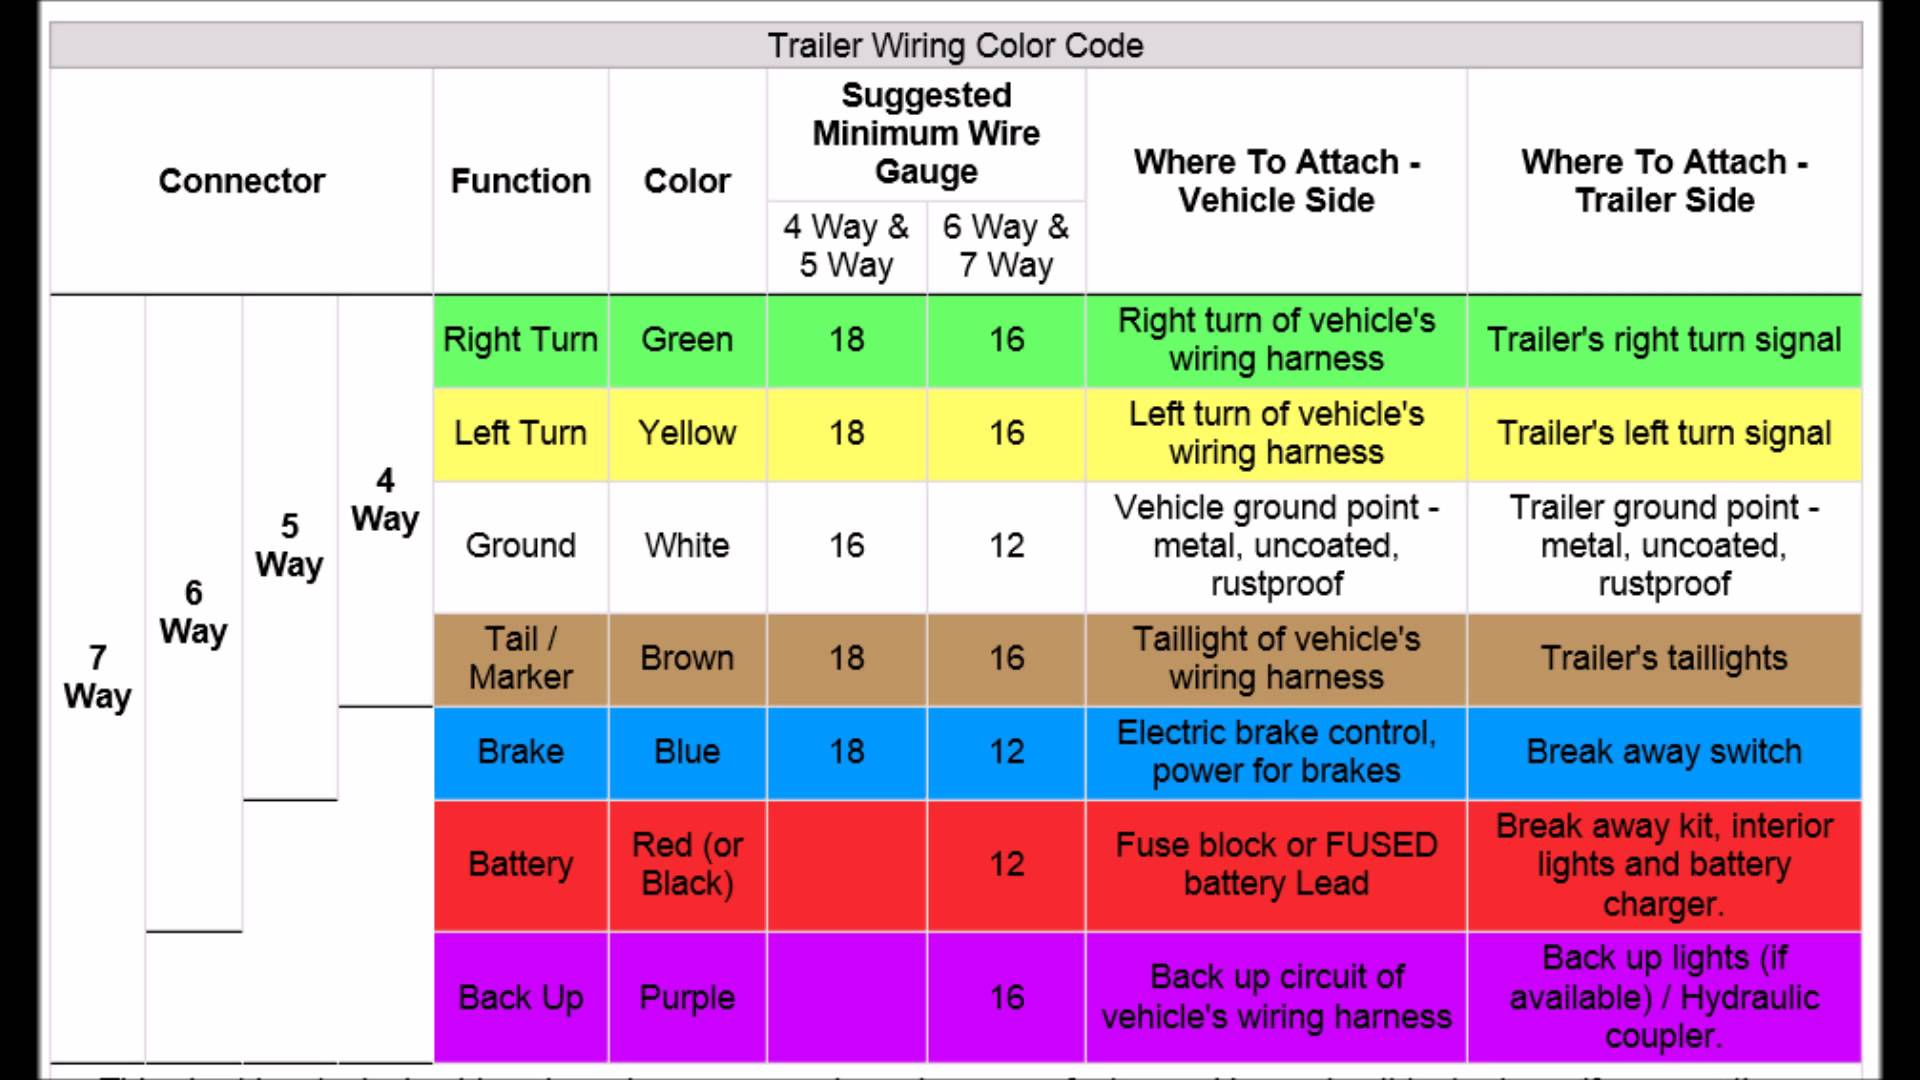 Maxresdefault 4 Pin To 7 Pin Trailer Adapter Wiring Diagram - Wiring - 7 Pin To 4 Pin Trailer Wiring Diagram